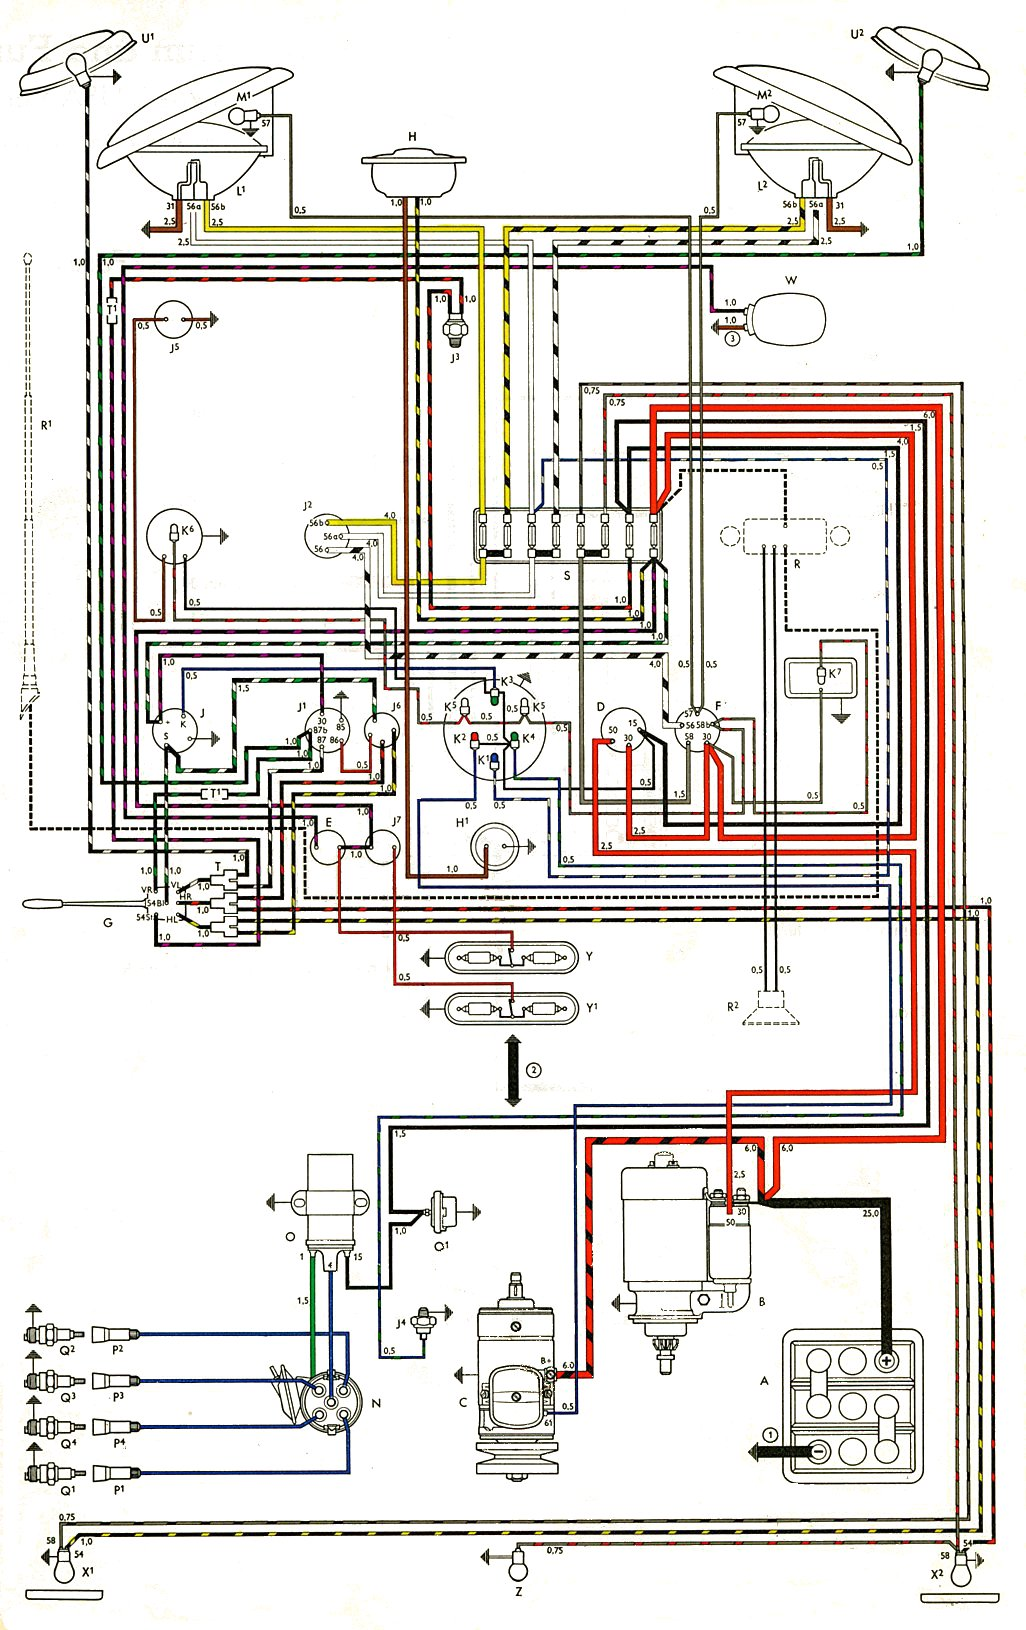 bus_63_USA thesamba com type 2 wiring diagrams vw wiring diagrams at couponss.co